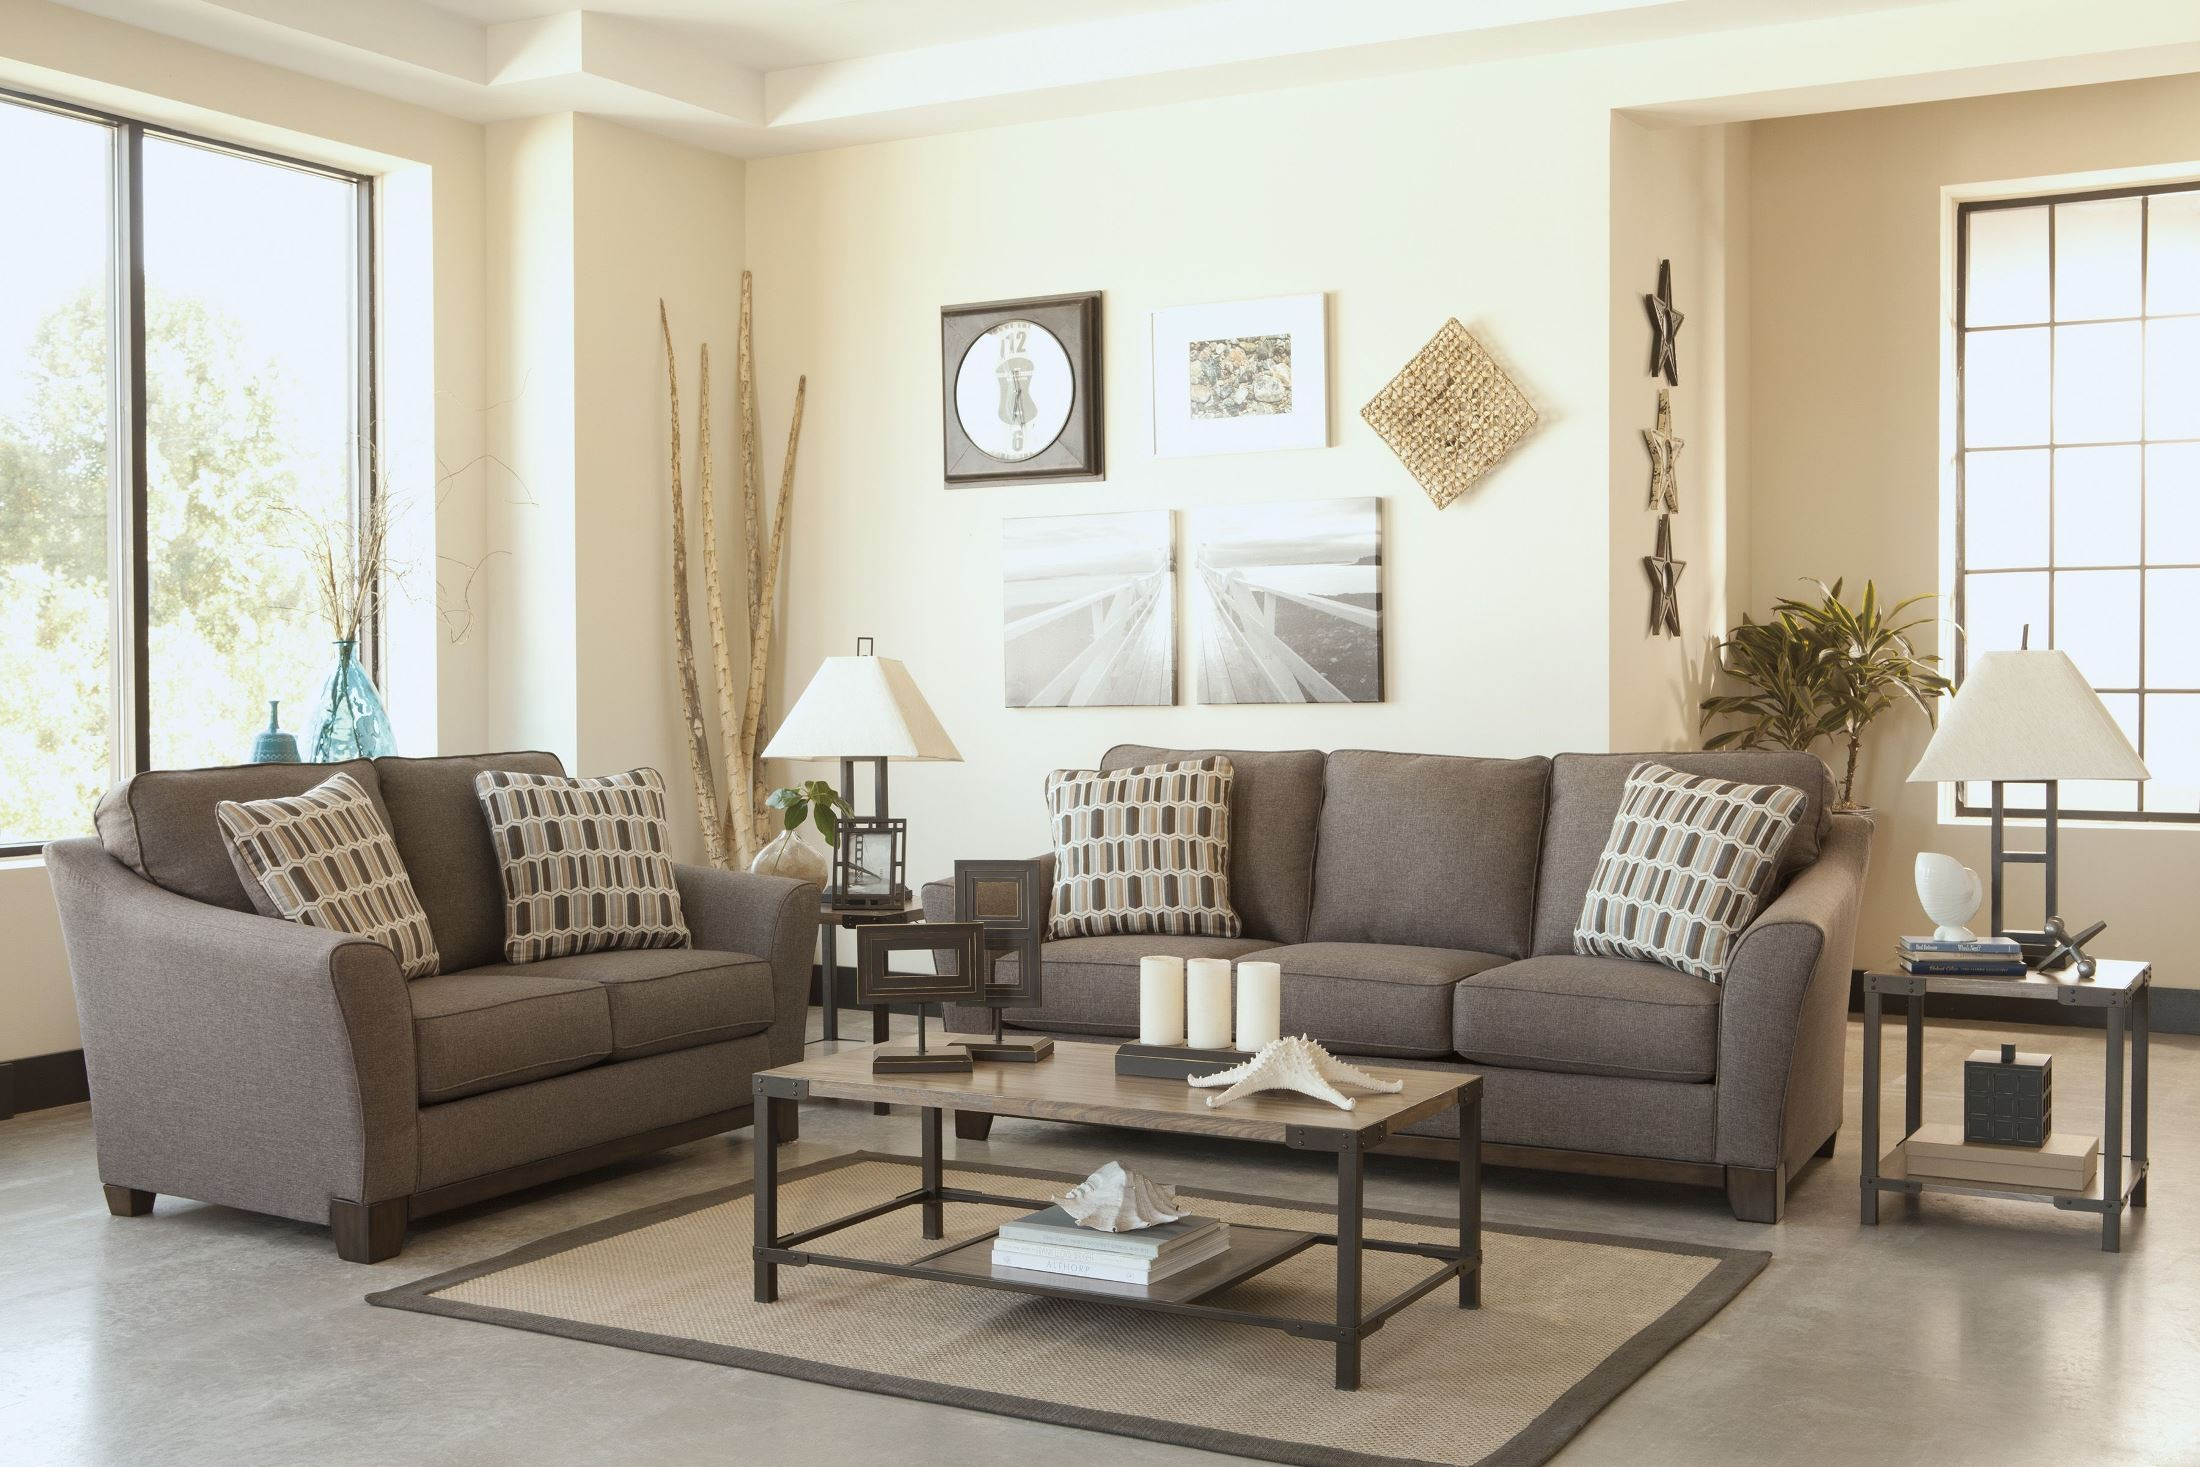 Janley slate living room set from ashley 43804 38 35 for Living room june jordan